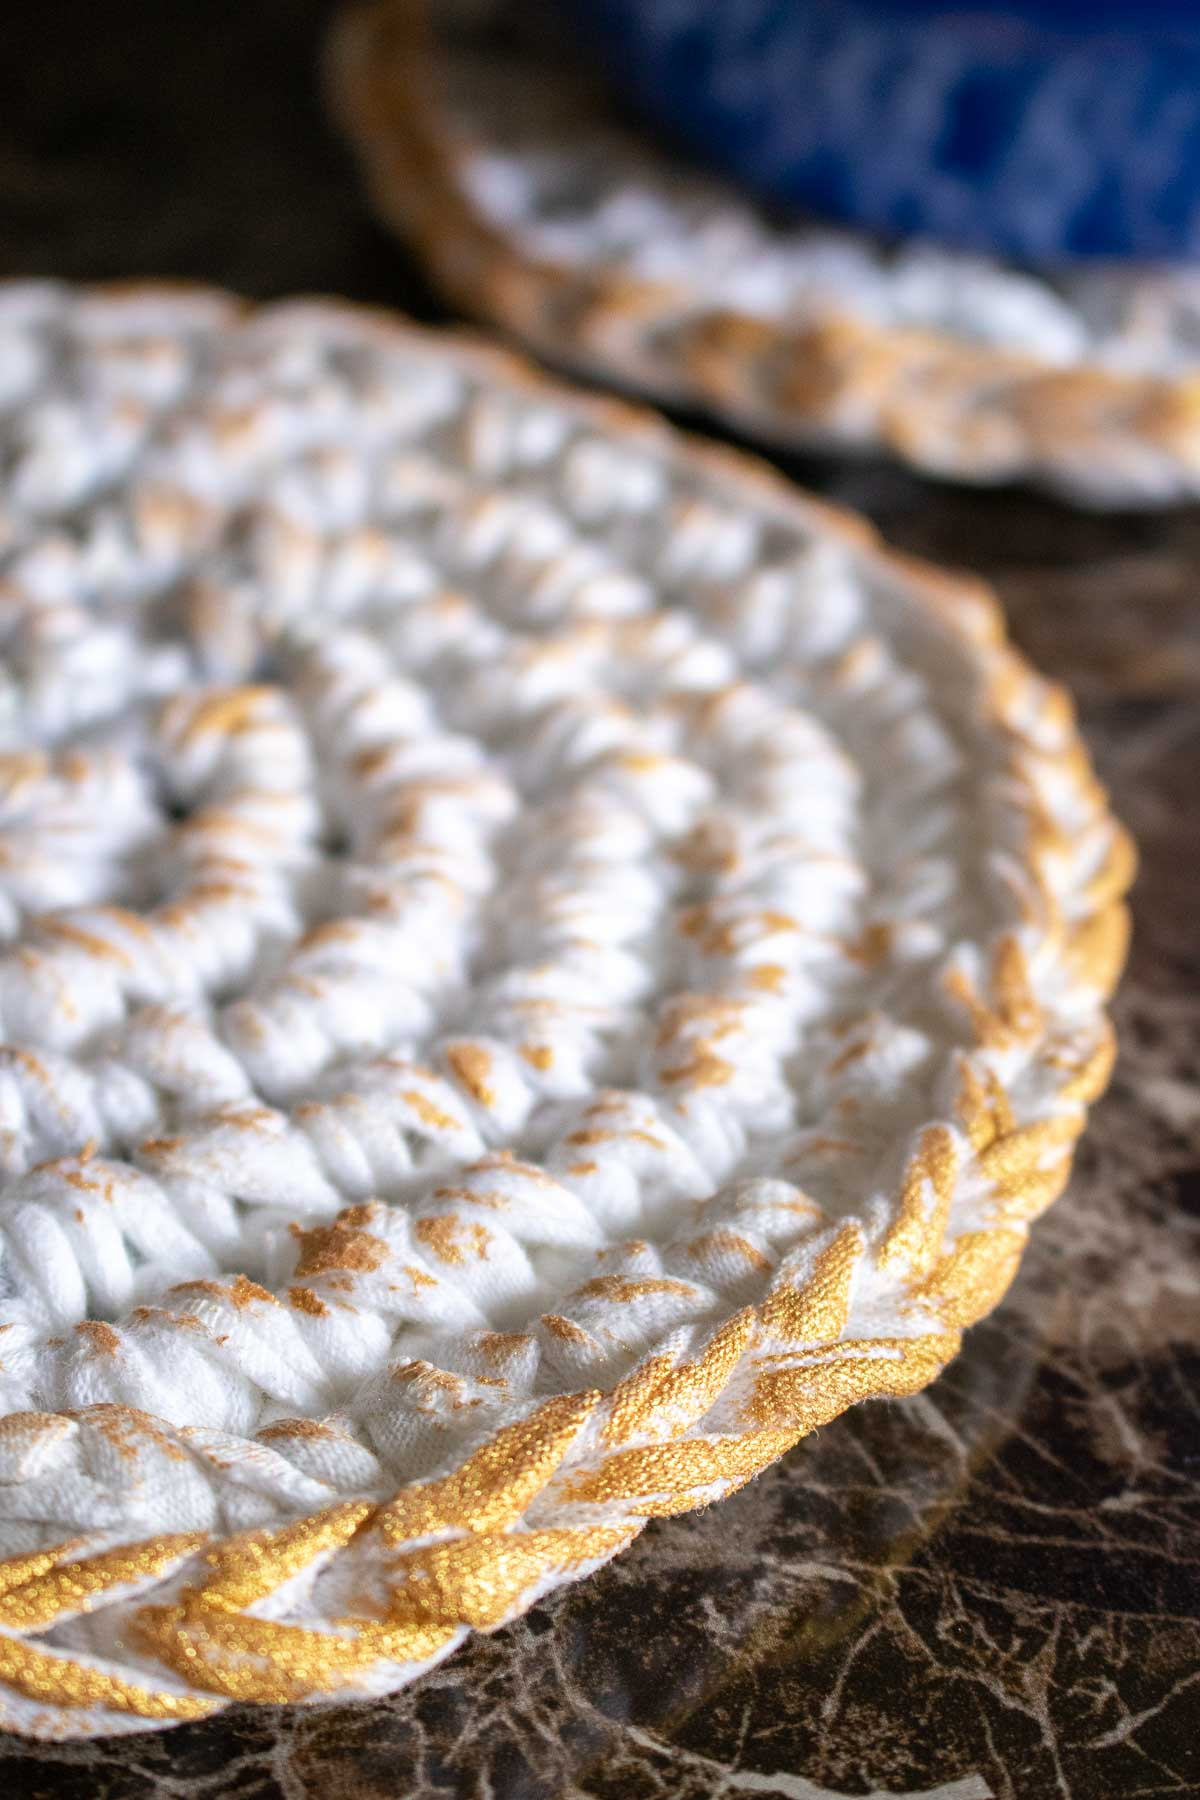 Close up image of the edge of the gold-painted t-shirt yarn heat pad.